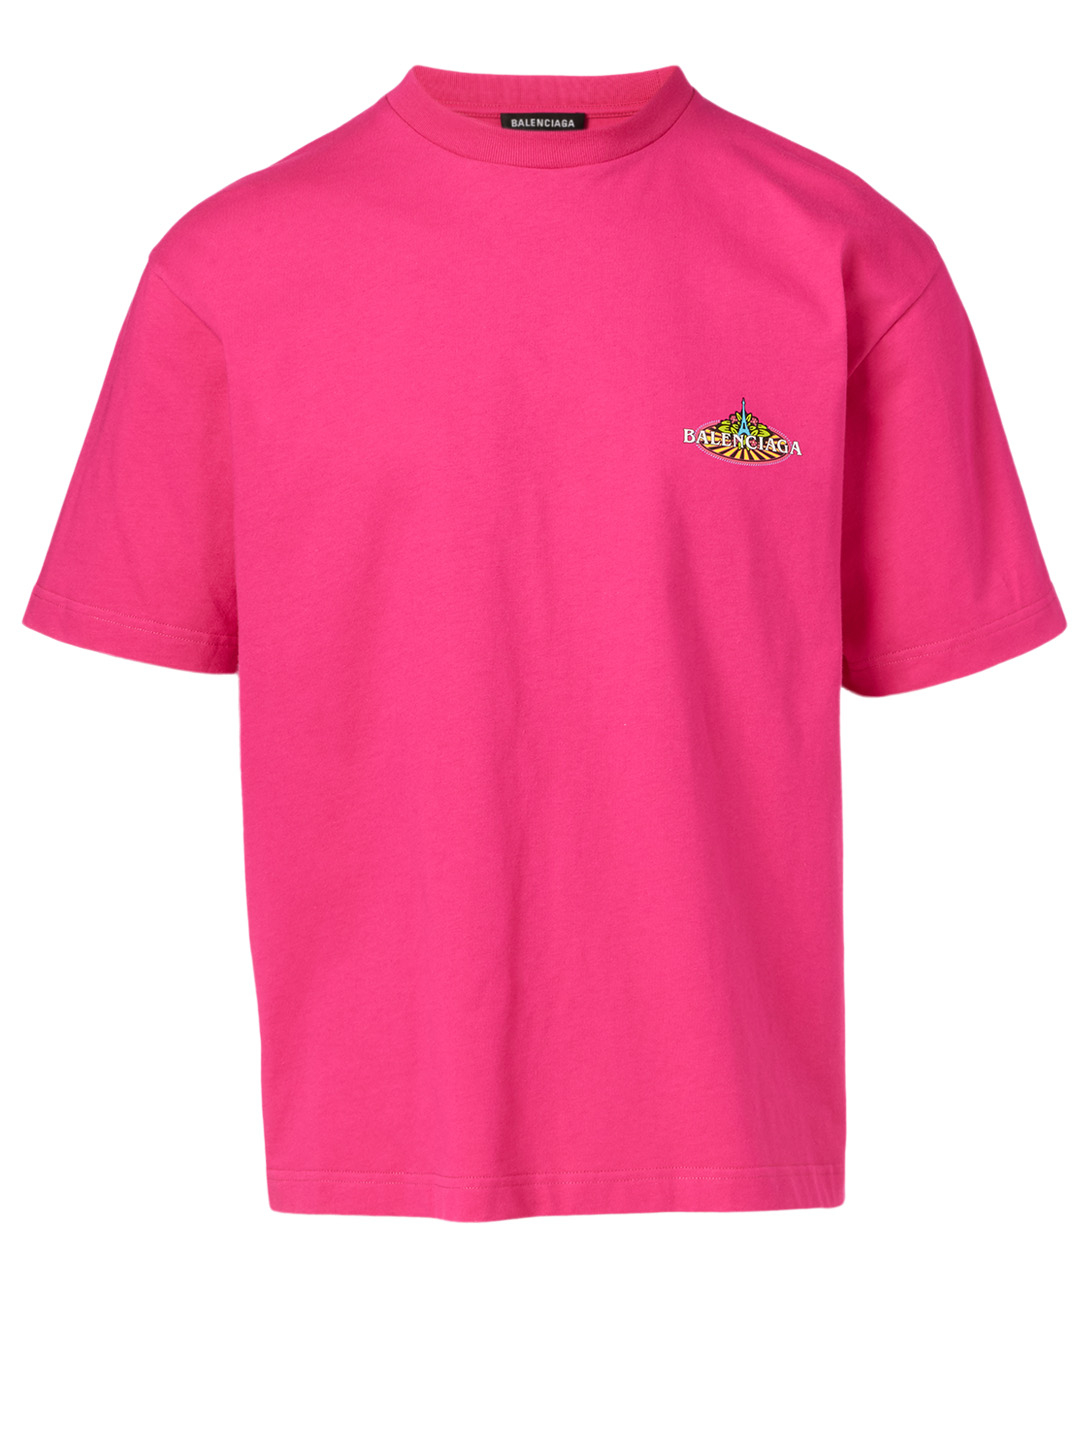 BALENCIAGA Bonjour Cotton T-Shirt Men's Pink